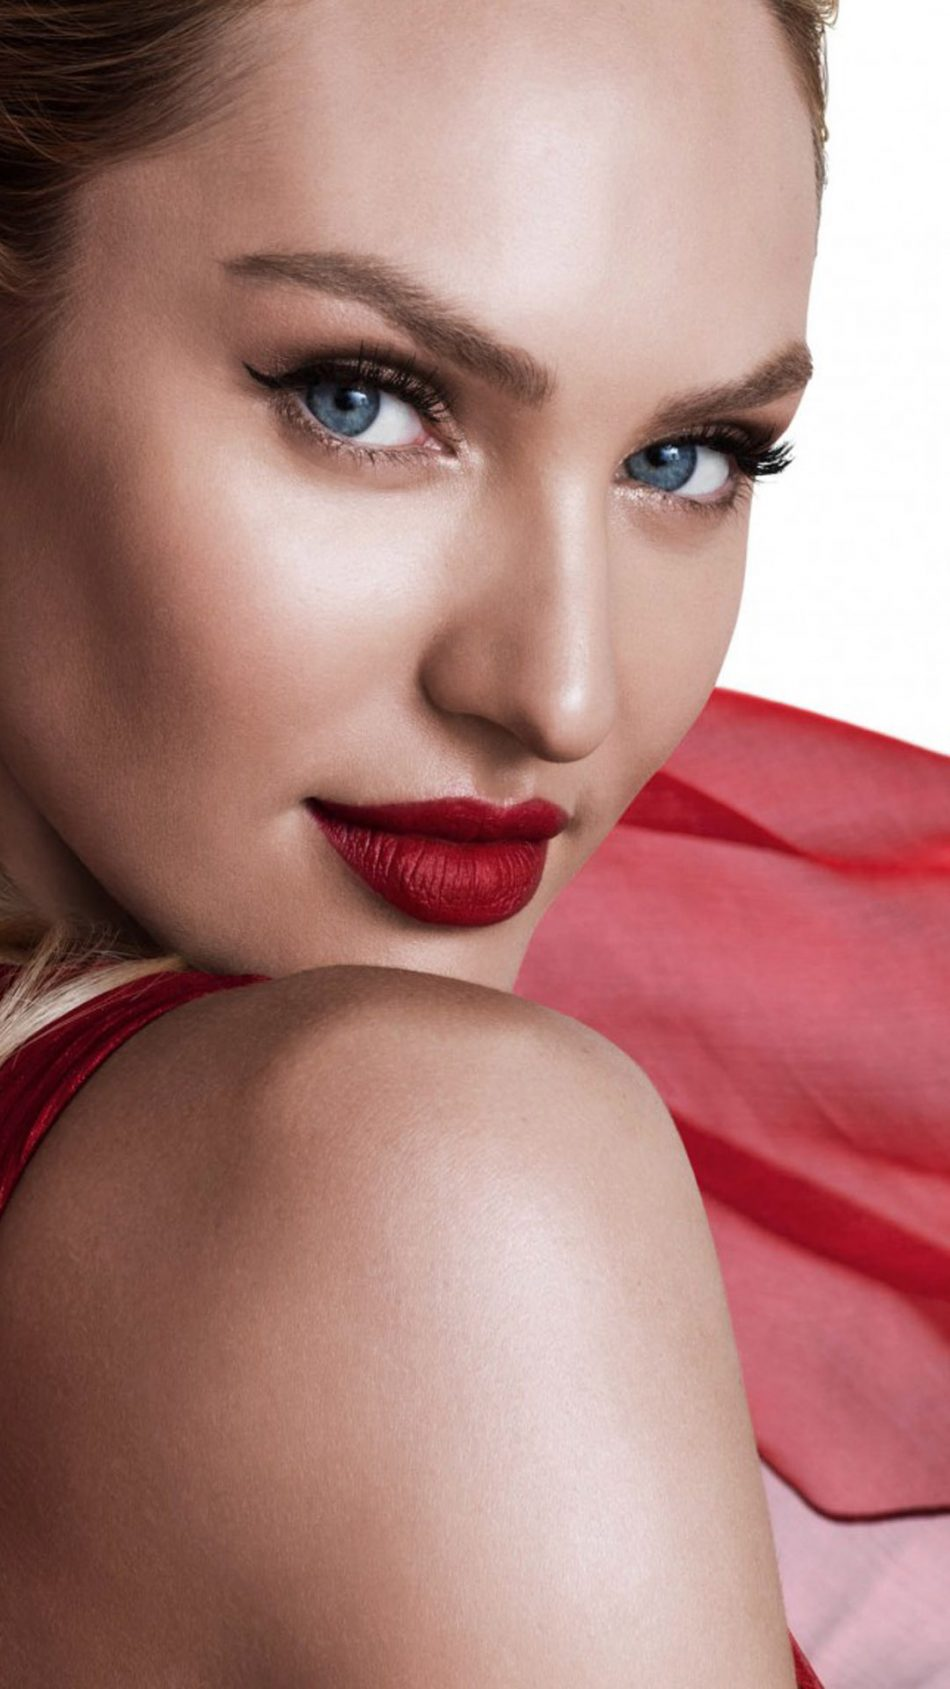 Candice Swanepoel In Beautiful Red Dress HD Mobile Wallpaper